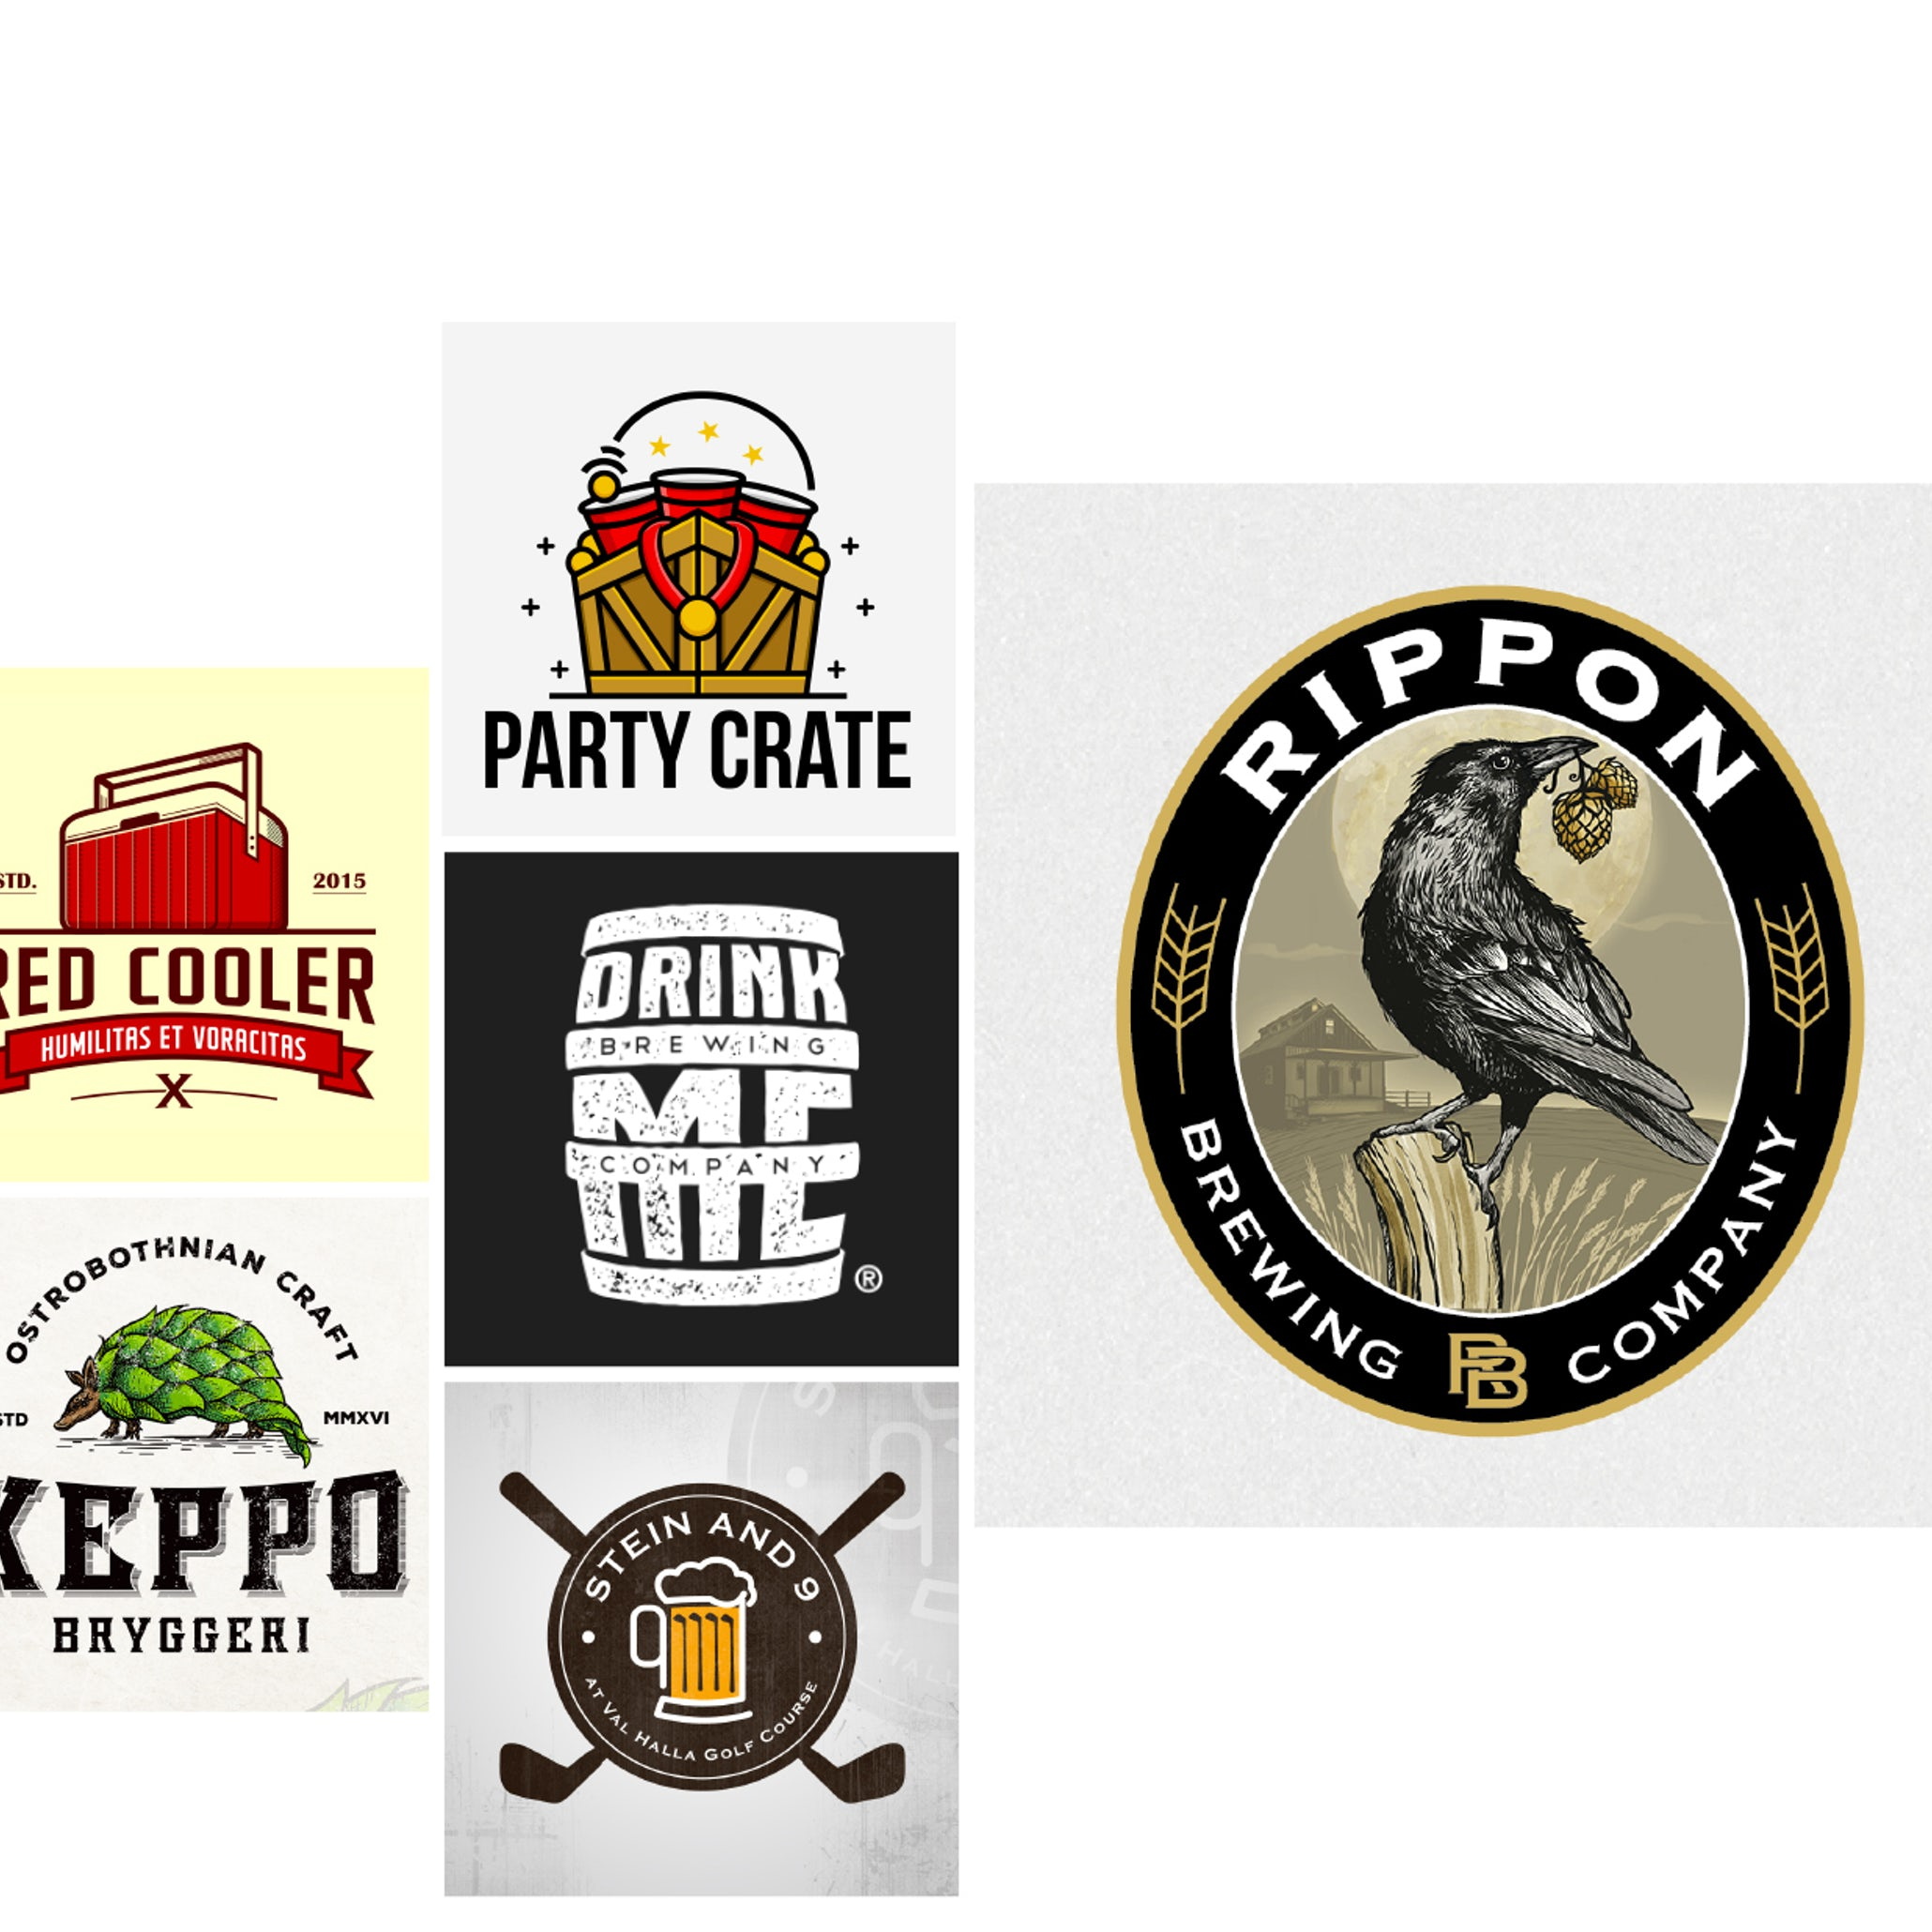 47 beer and brewery logos to drink in - 99designs